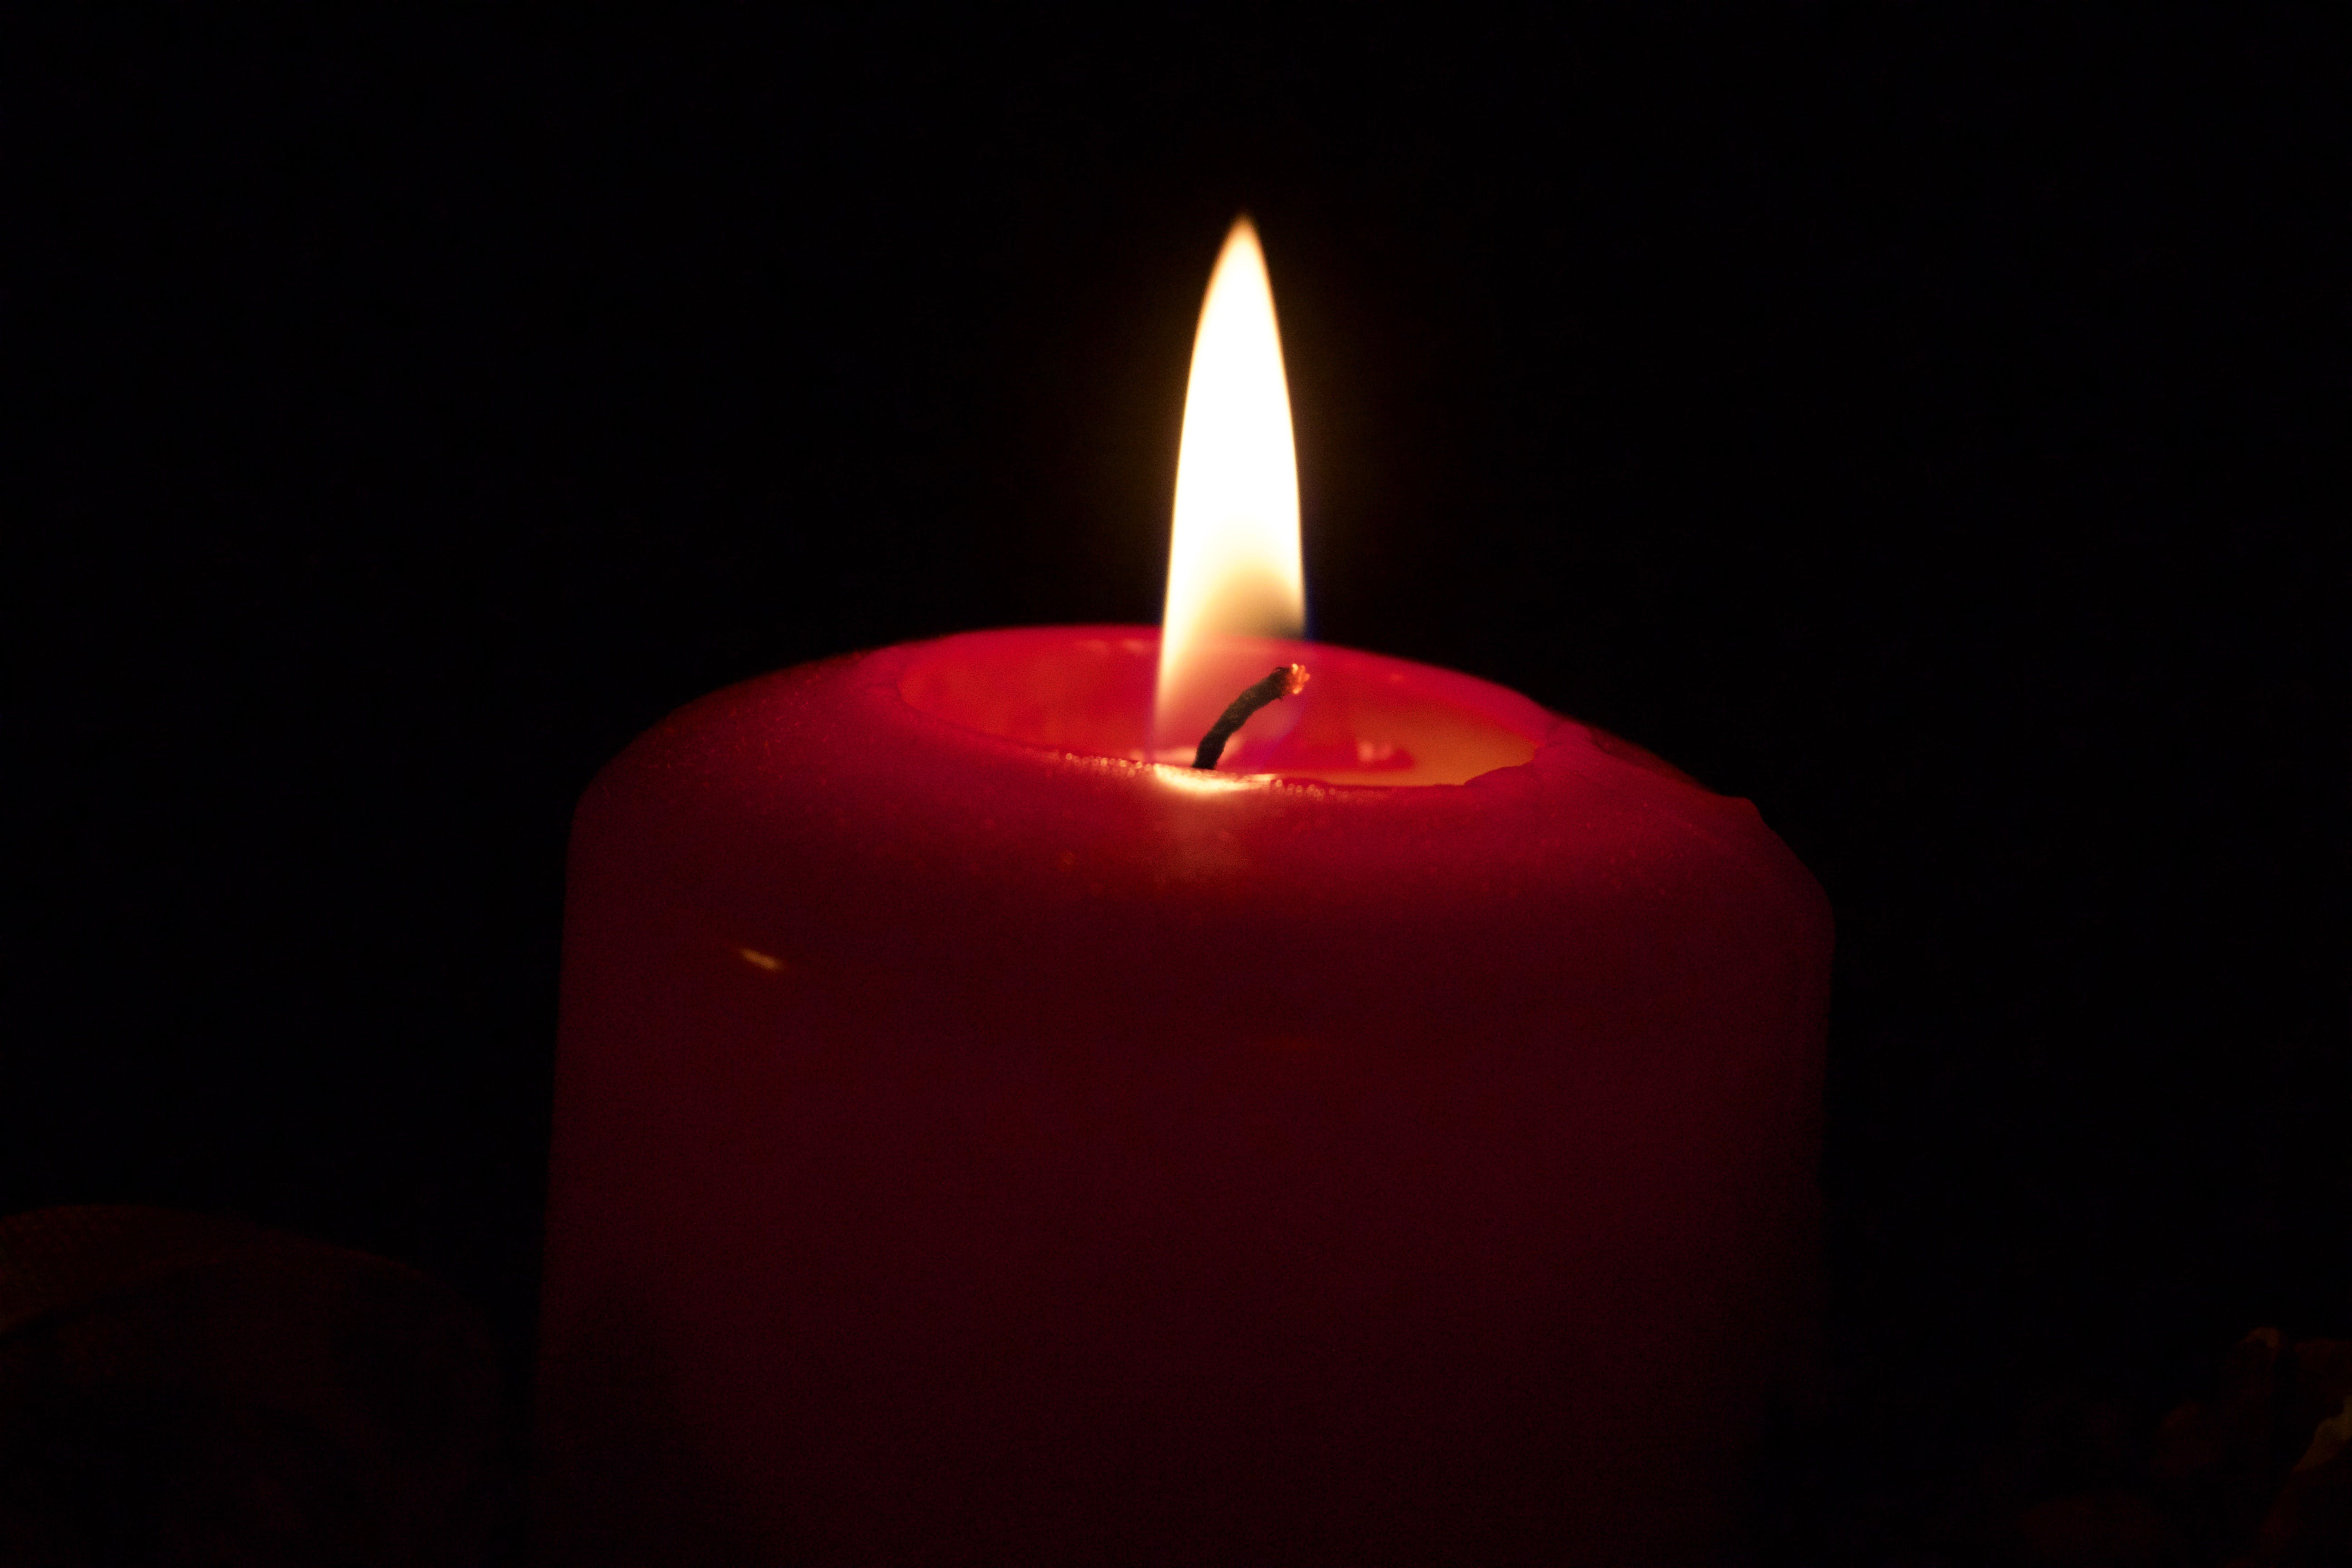 Free stock photo of candle, candlelight, dark, darkness